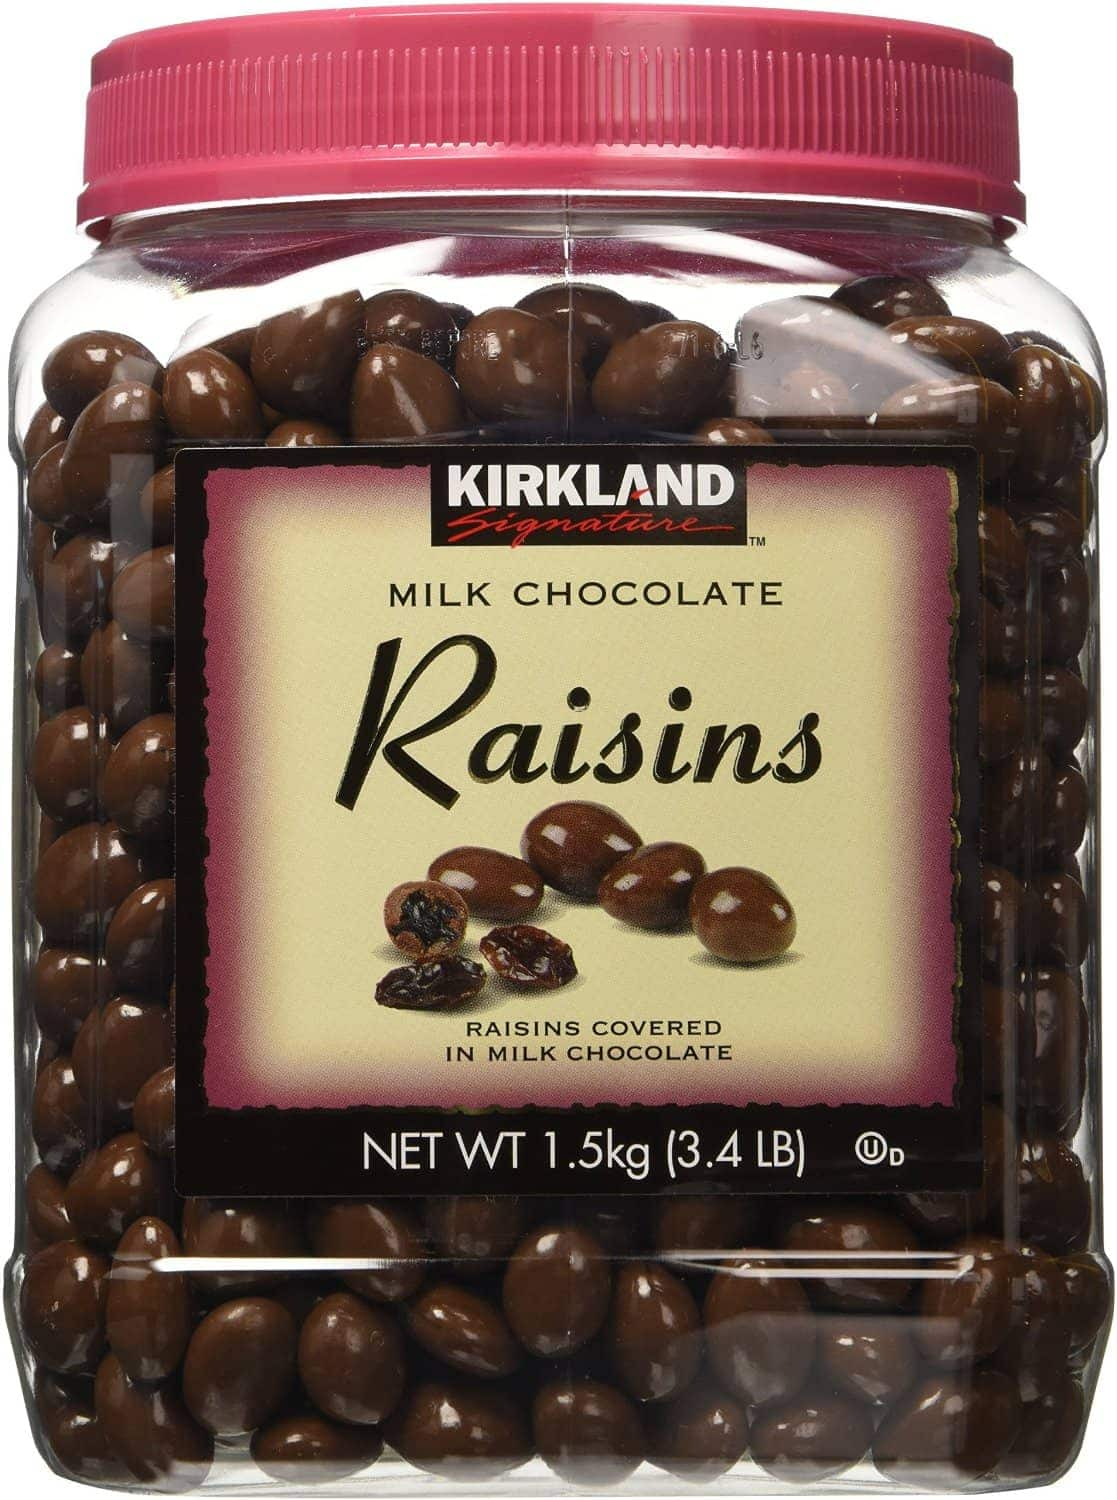 Kirkland Signature Milk Chocolate Raisins, 54 oz